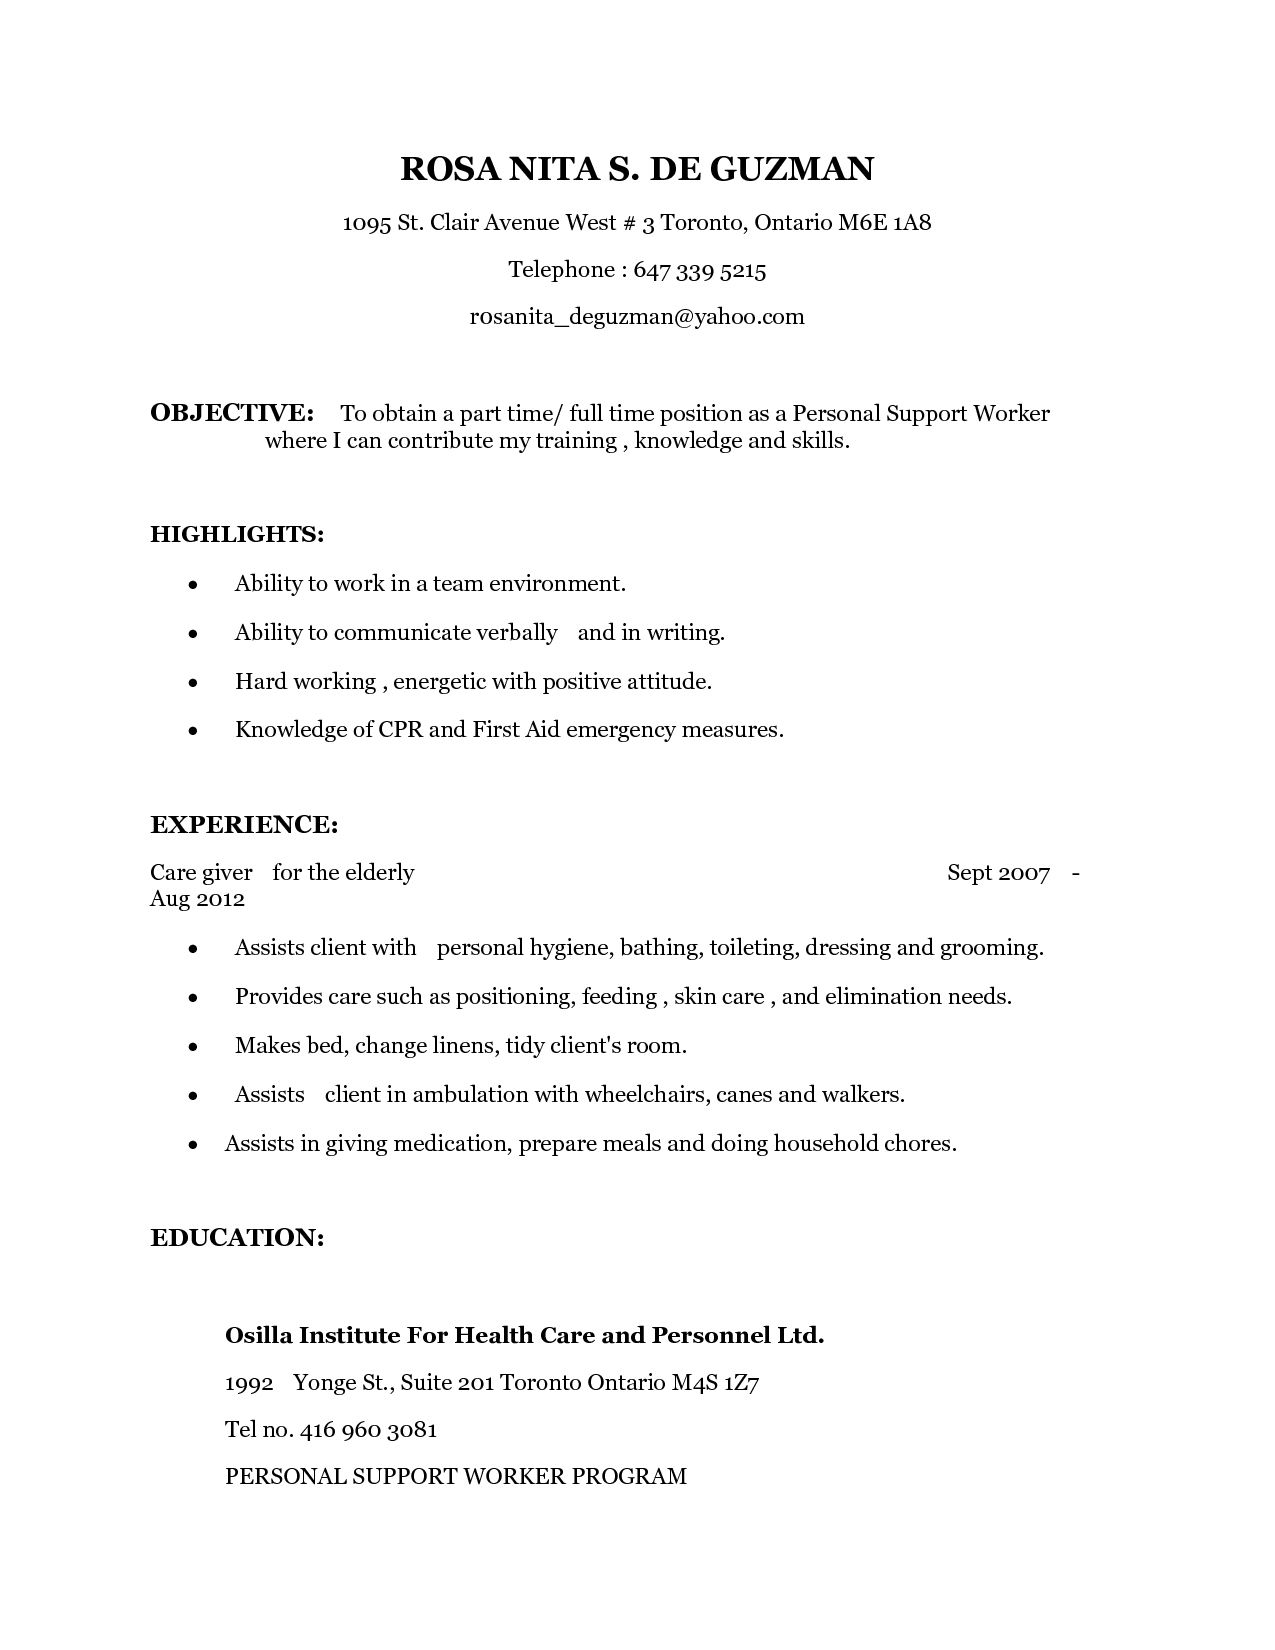 69 Unique Images Of Resume for Psw Examples | Resume